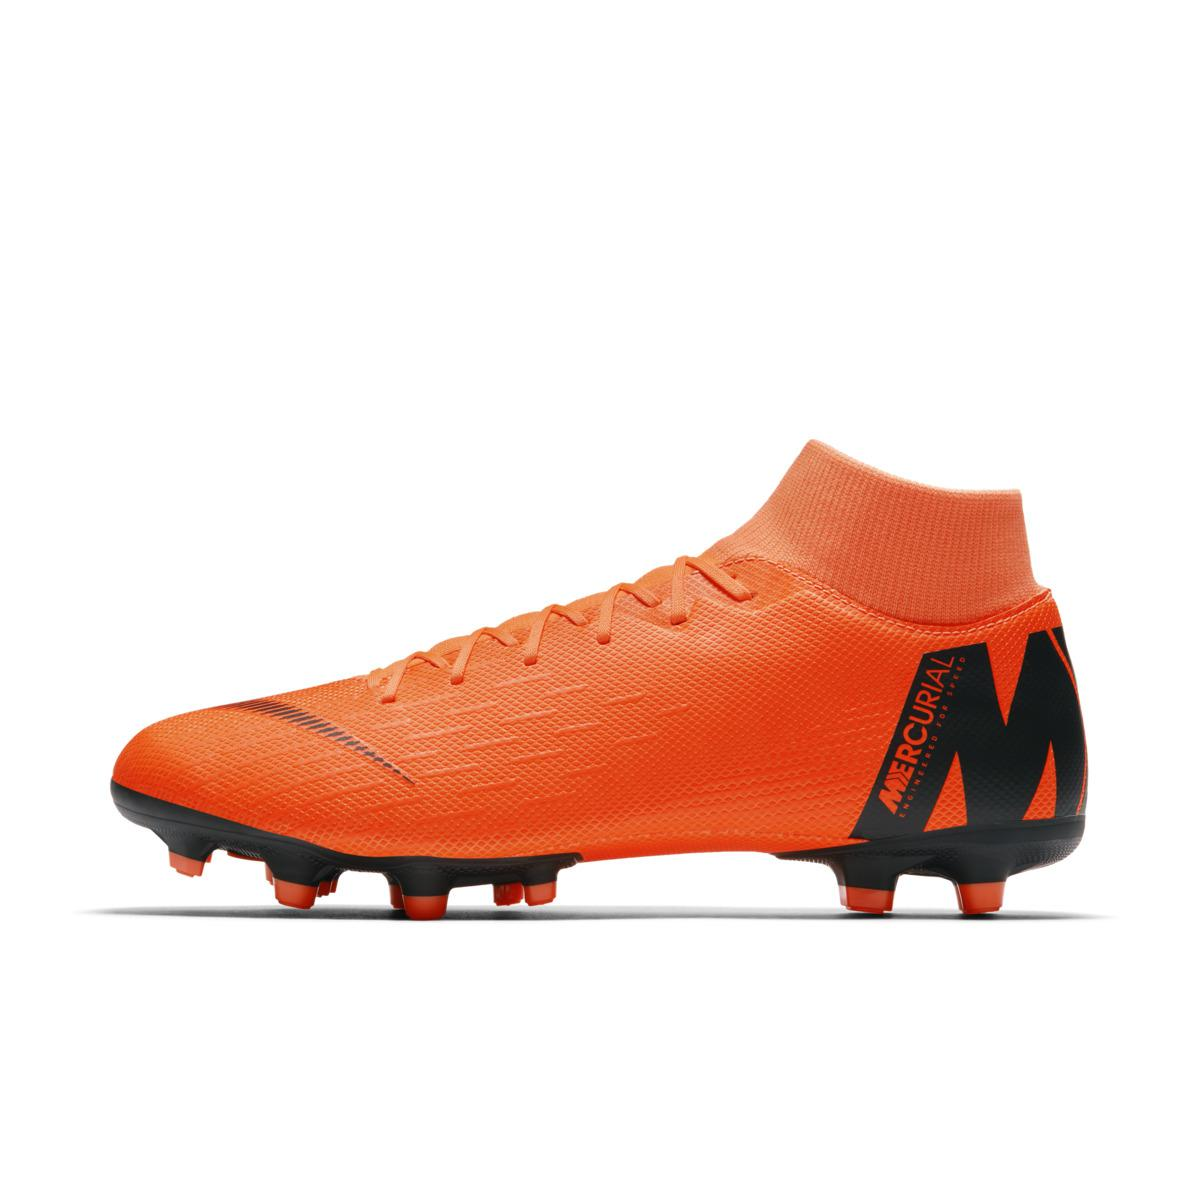 f597578445b Lyst - Nike Mercurial Superfly Vi Academy Mg Football Boots in ...